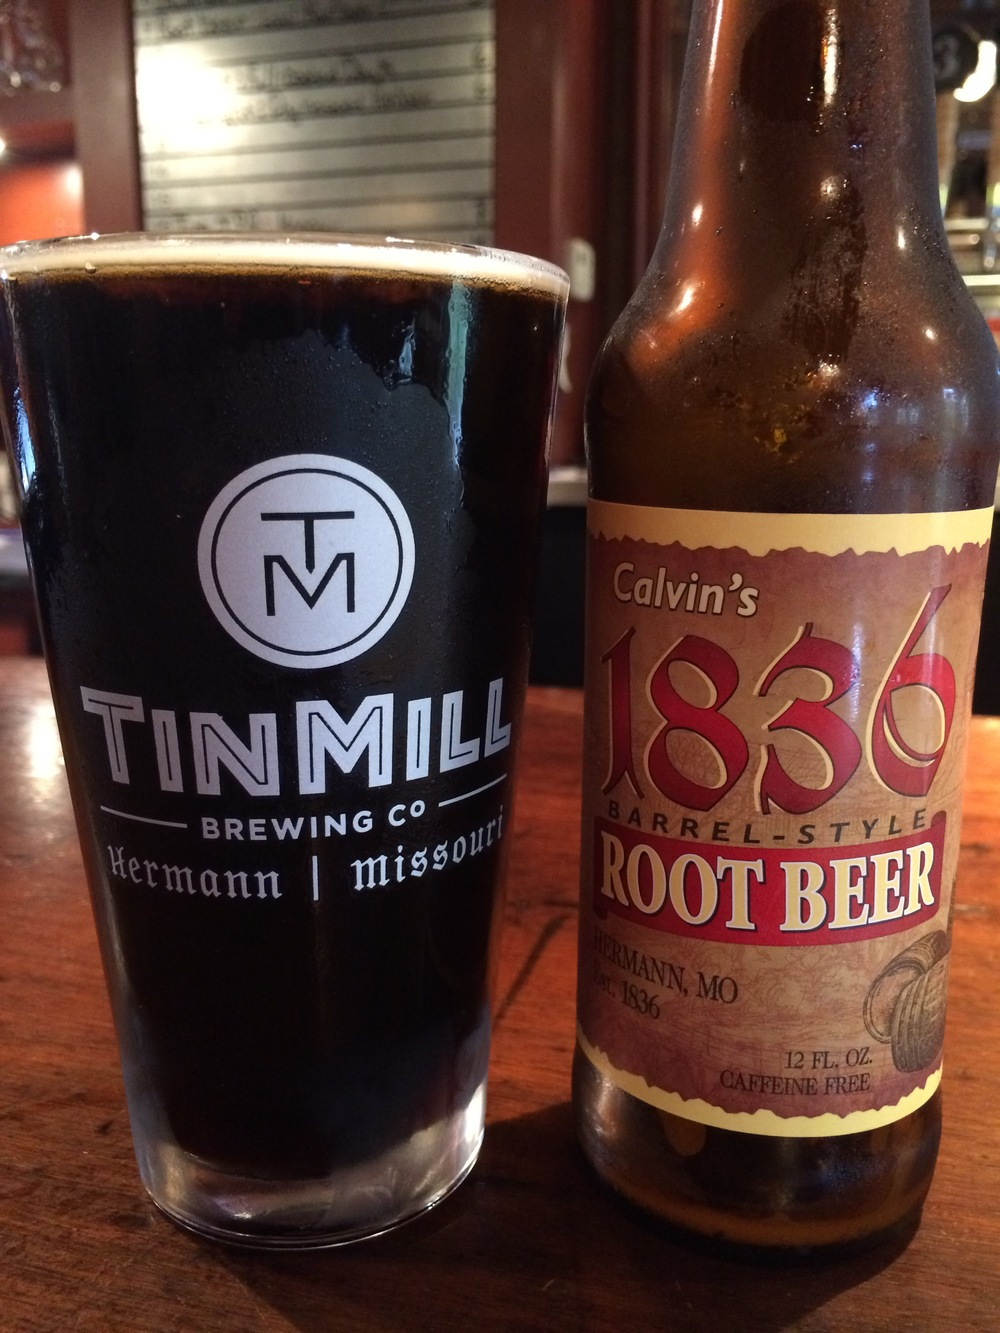 This best-ever root beer commemorates the year Hermann was founded.